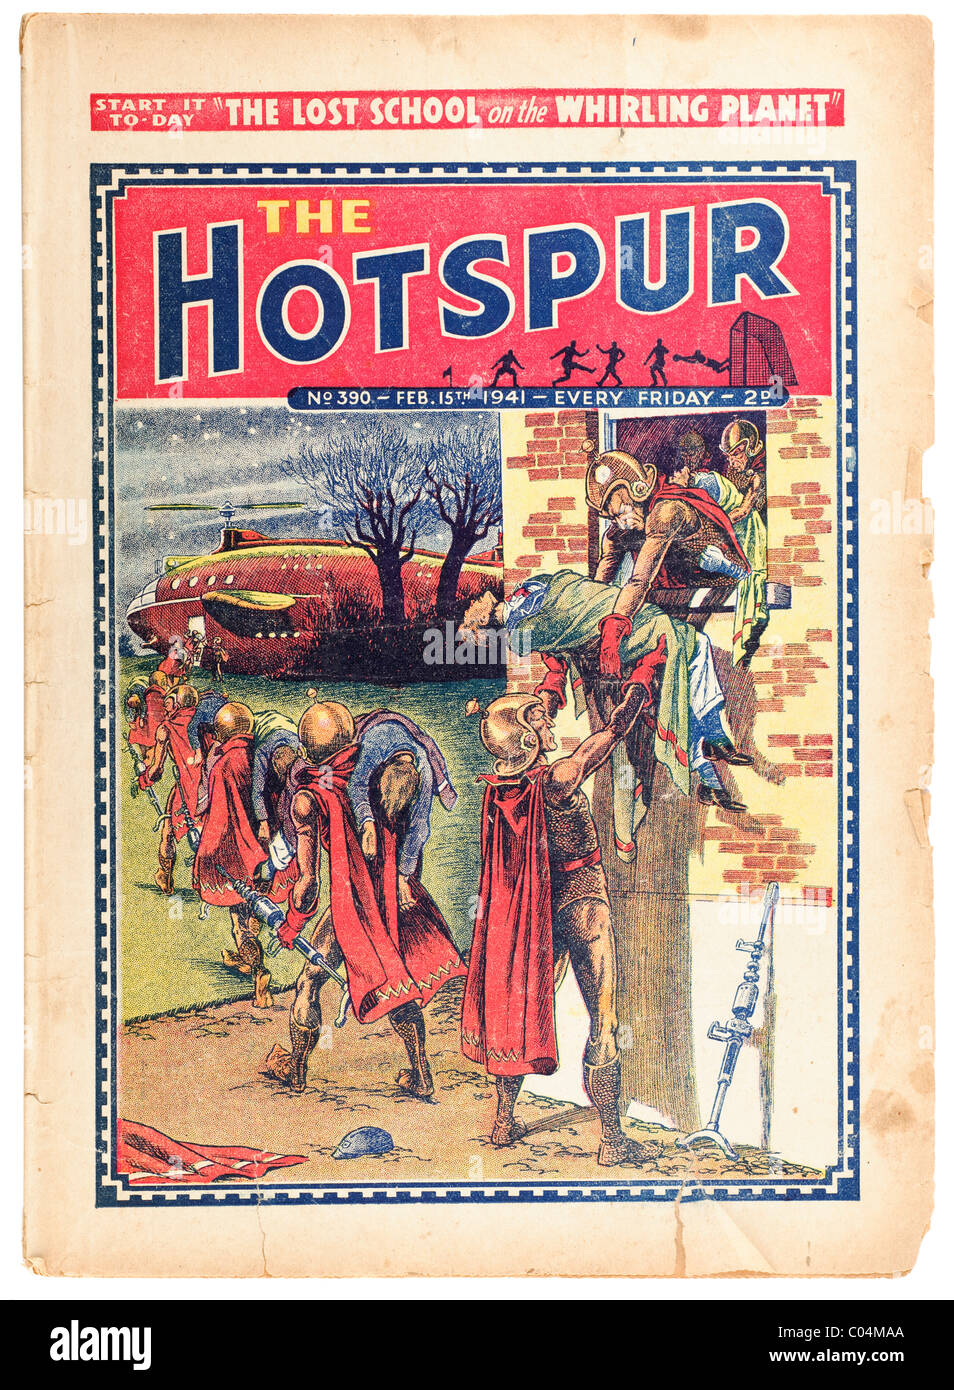 Old torn faded vintage Hotspur comic from February 15th 1941 'The Lost School of the Whirling Planet'. EDITORIAL - Stock Image